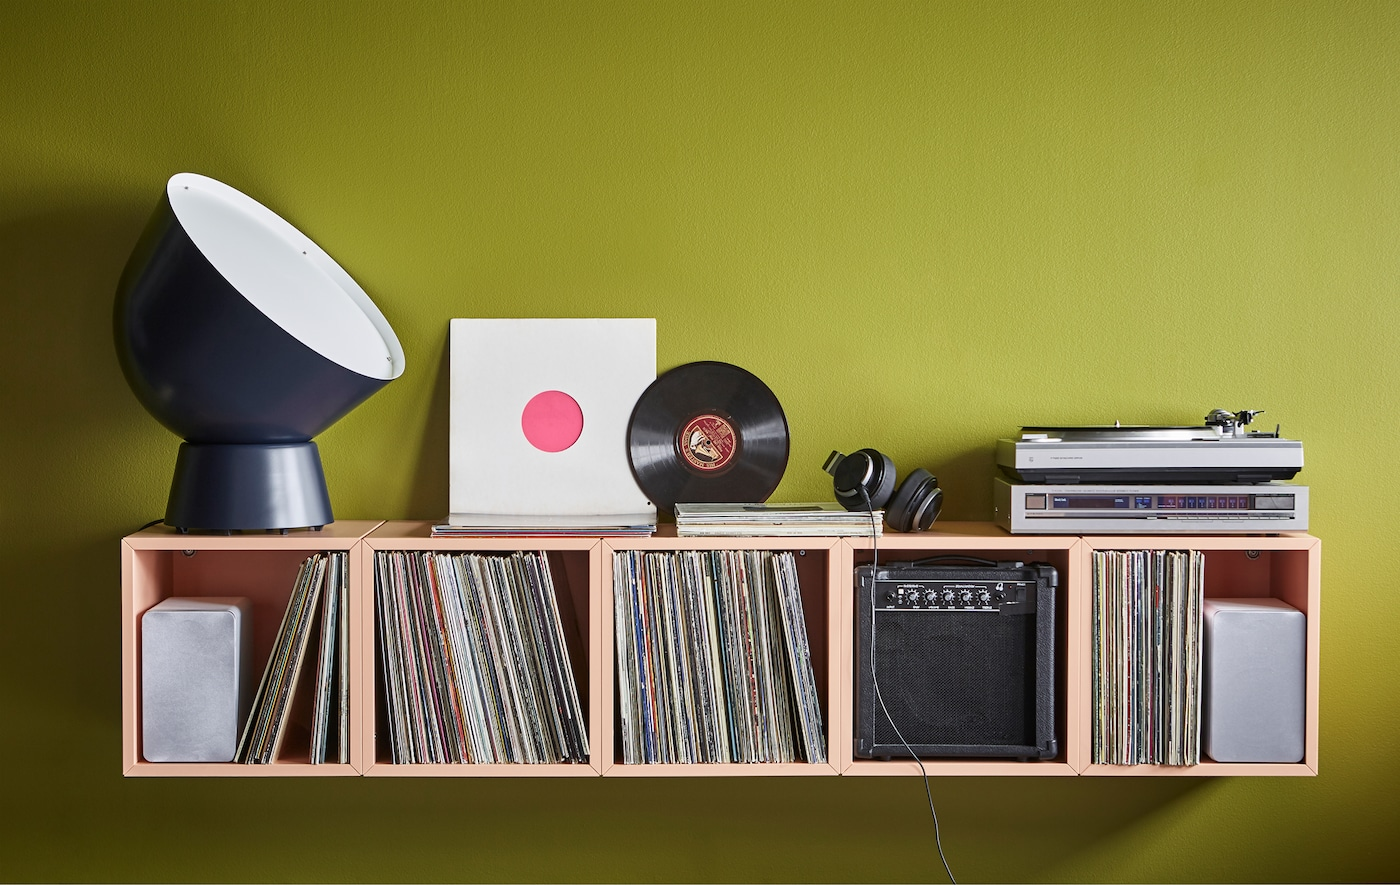 A home DJ-station uses EKET cabinets in light orange for record storage.